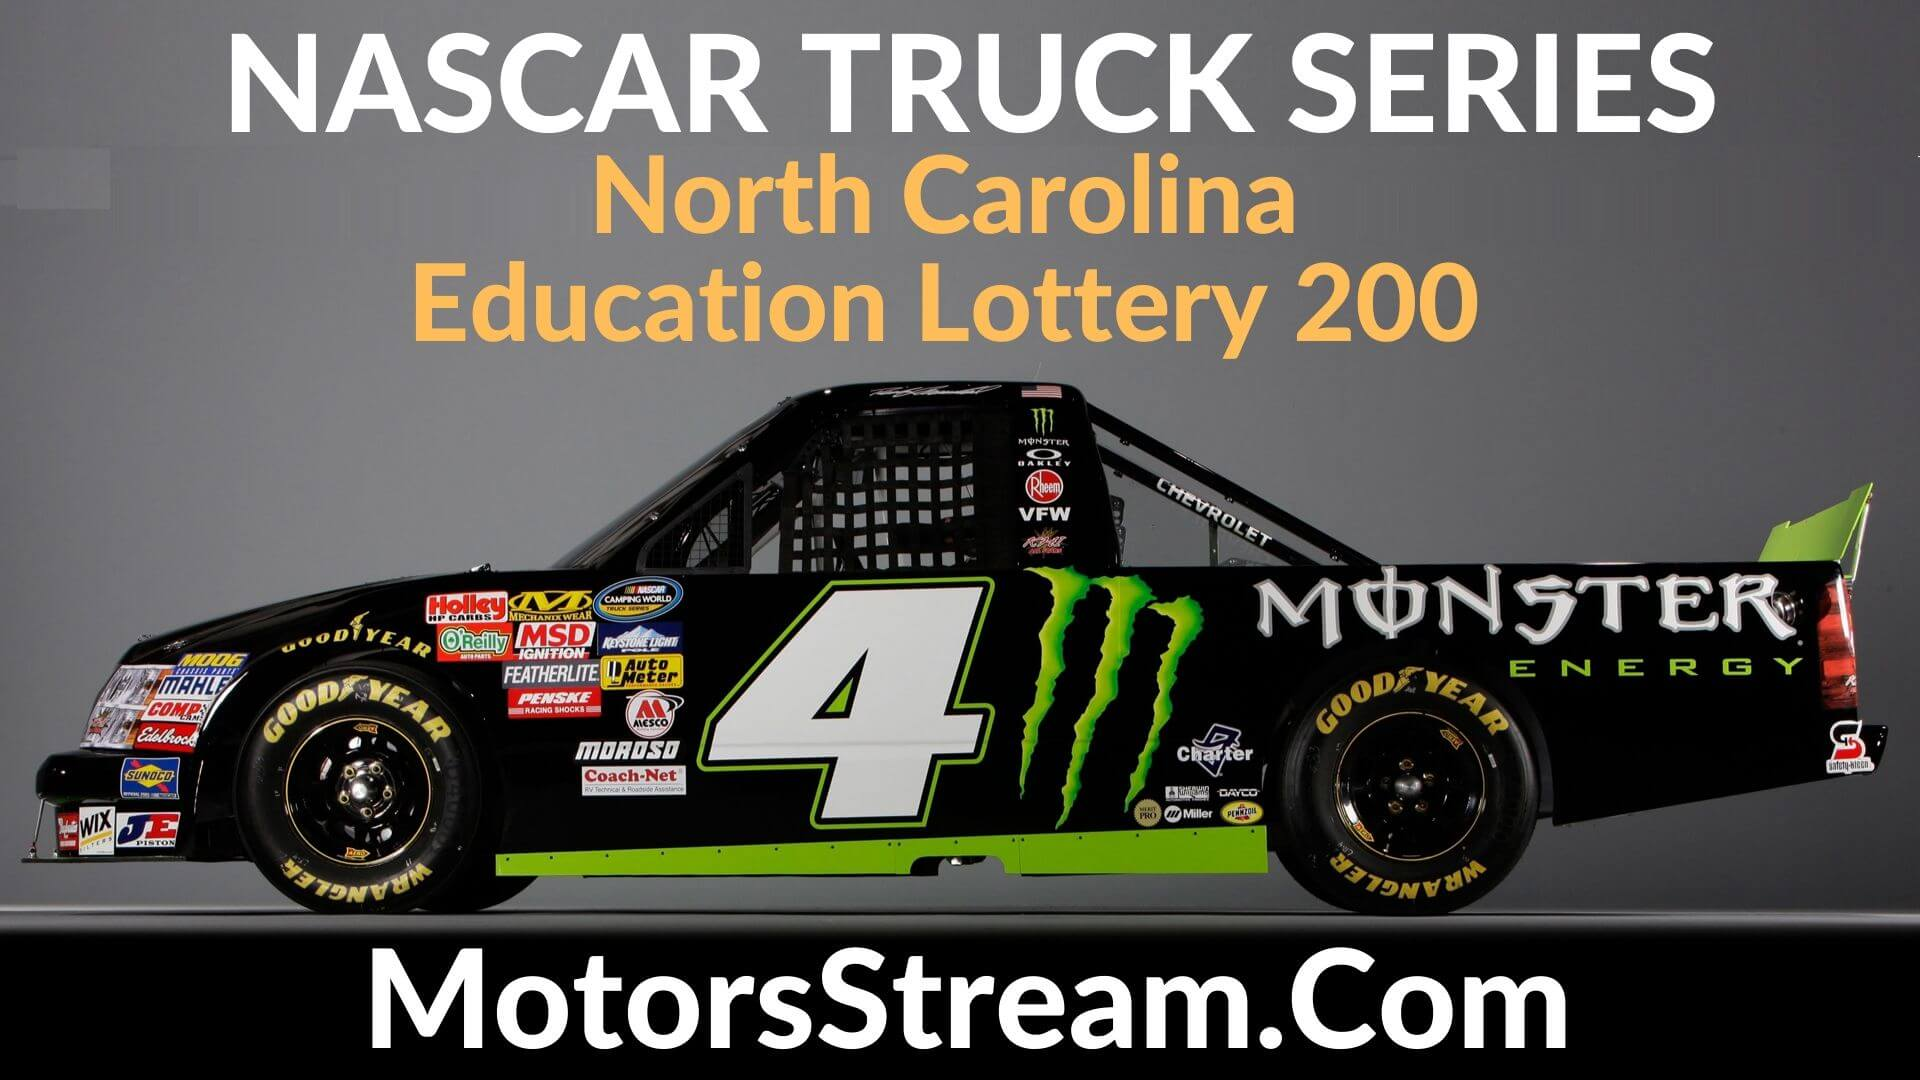 North Carolina Education Lottery 200 Live Stream | Nascar Truck Series 2020